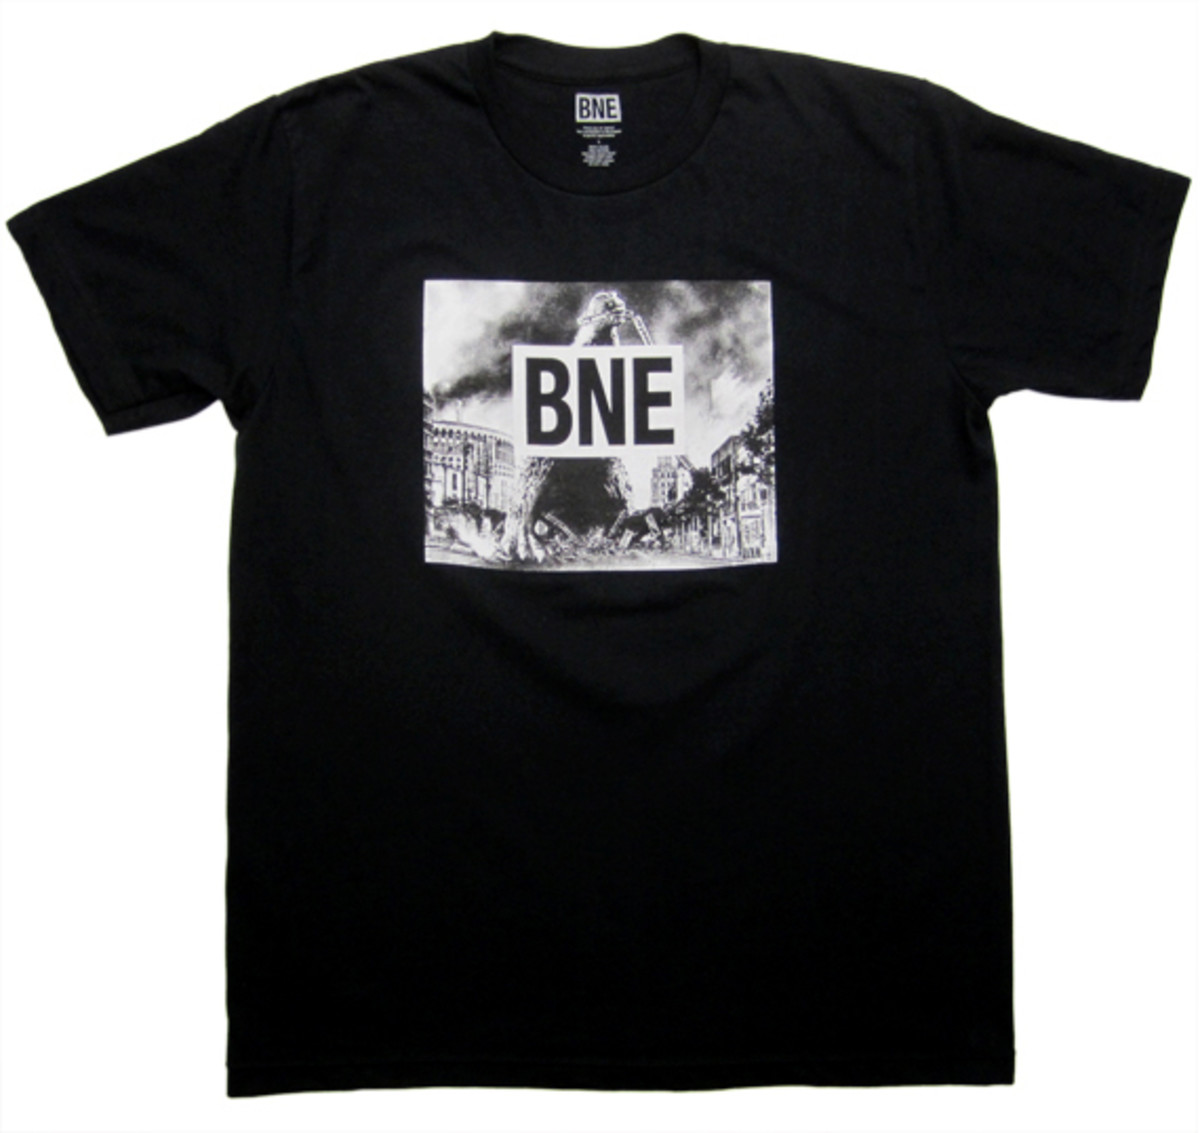 bne-water-foundation-fukushima-relief-collection-08